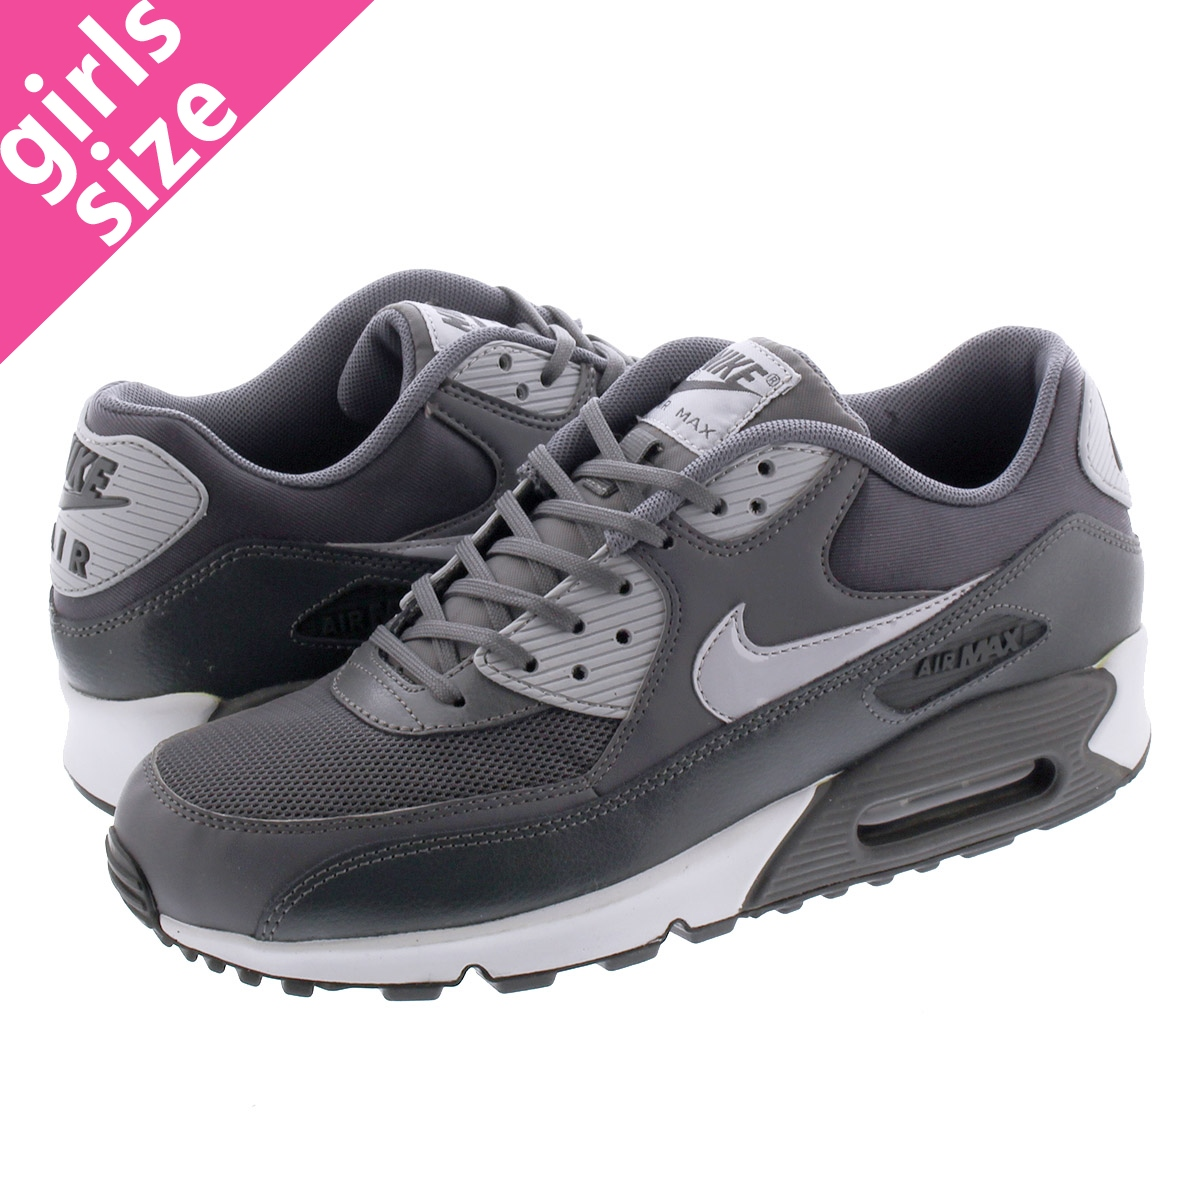 NIKE WMNS AIR MAX 90 ESSENTIAL Nike women Air Max 90 essential DARK GREYWOLF GREYANTHRACITE 616,730 030